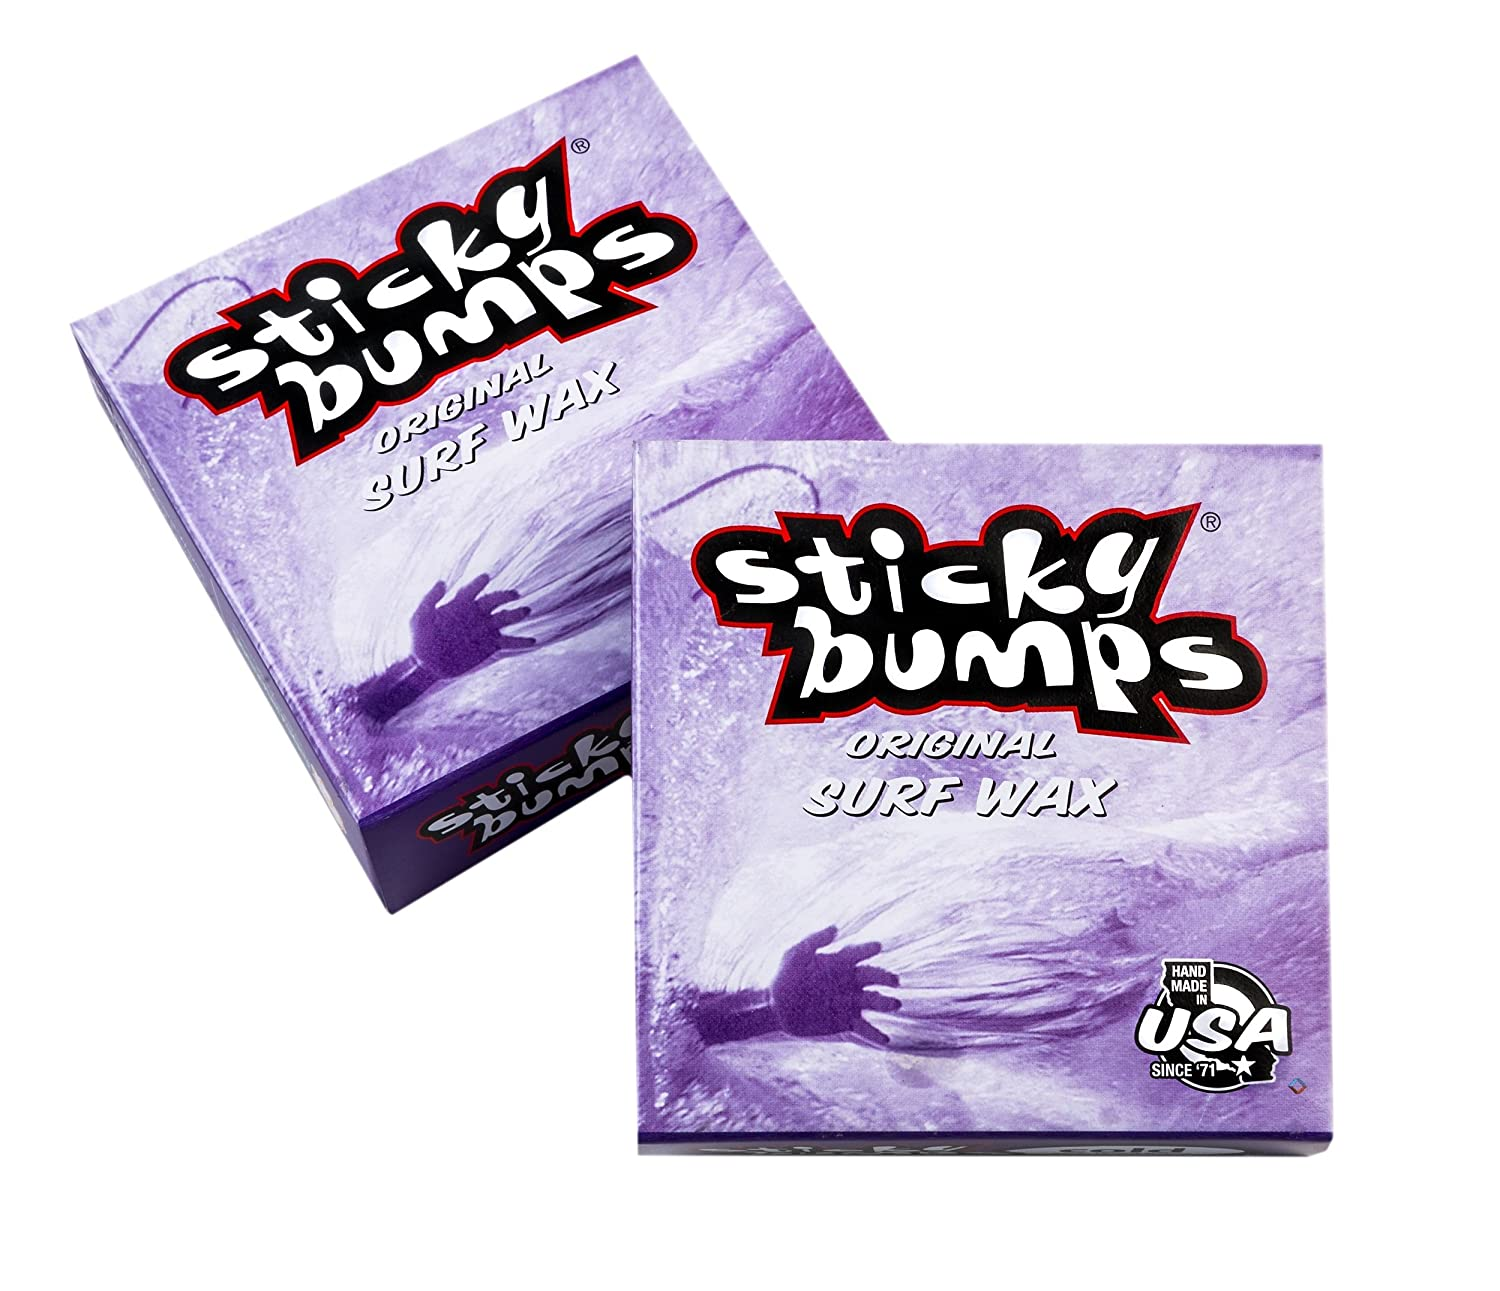 Sticky Bumps Cold Surf Wax Pack of 3 White